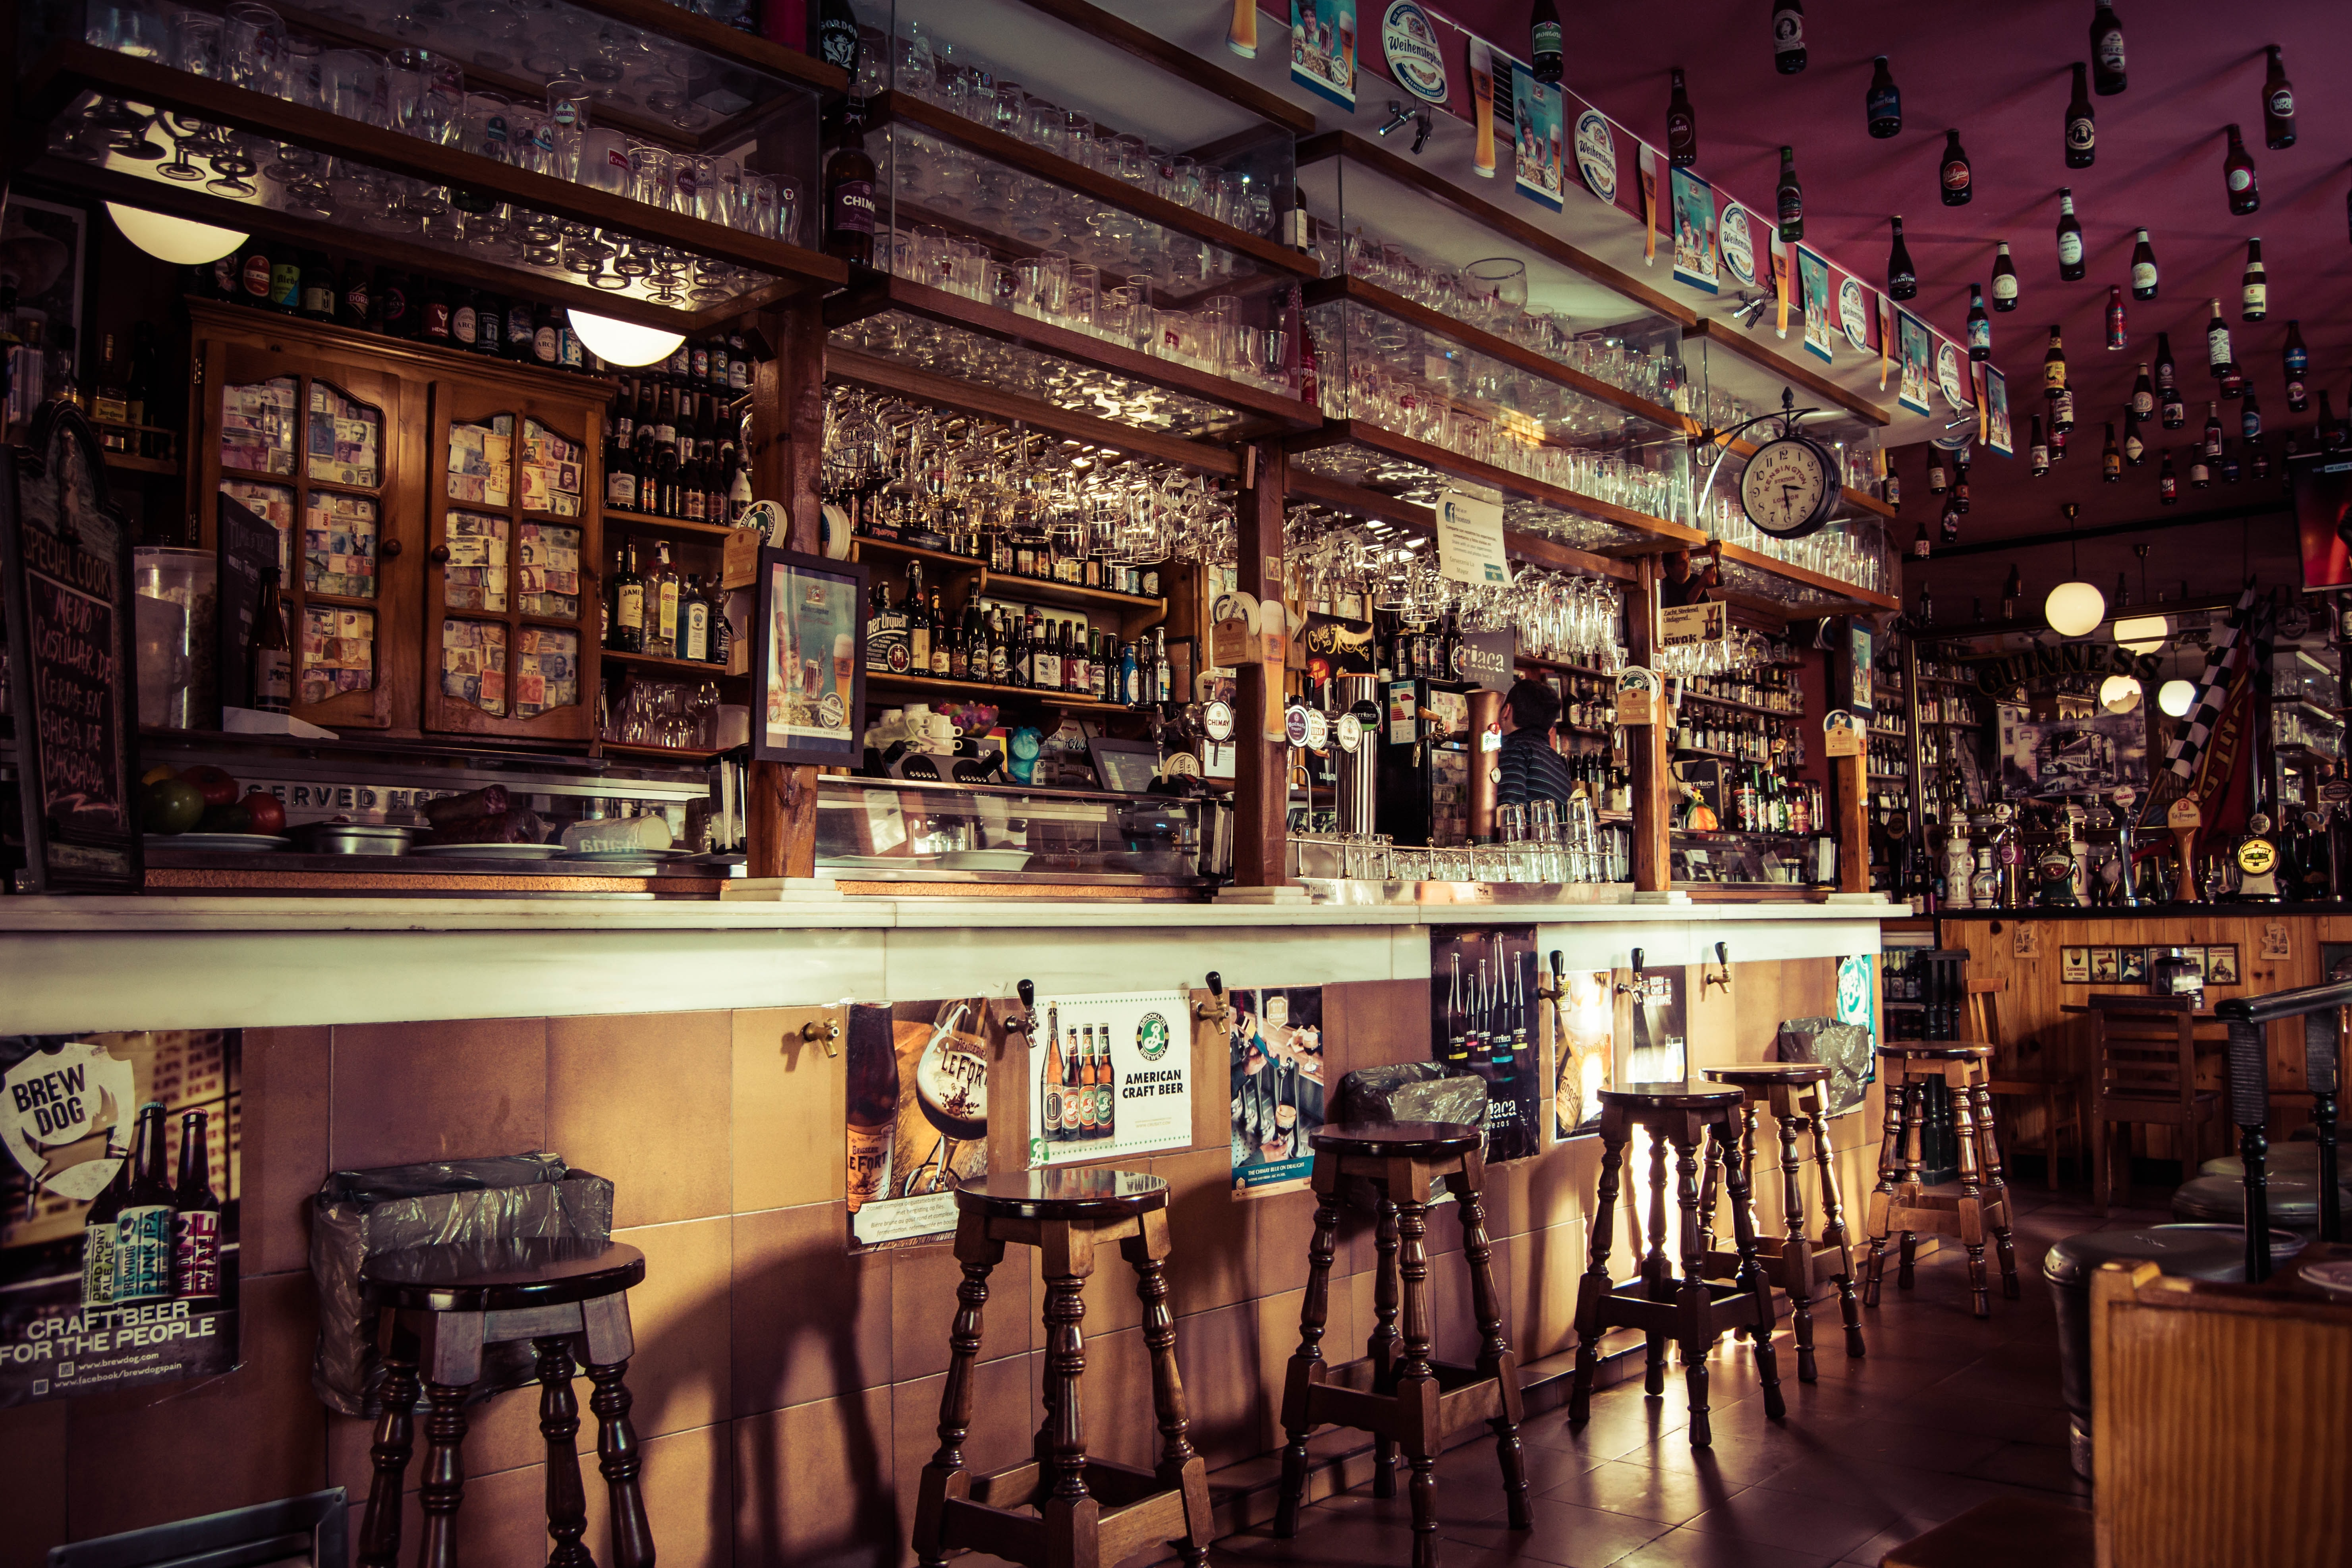 The interior of a bar with stools, glass cups and empty bottles attached to the roof in Madrid